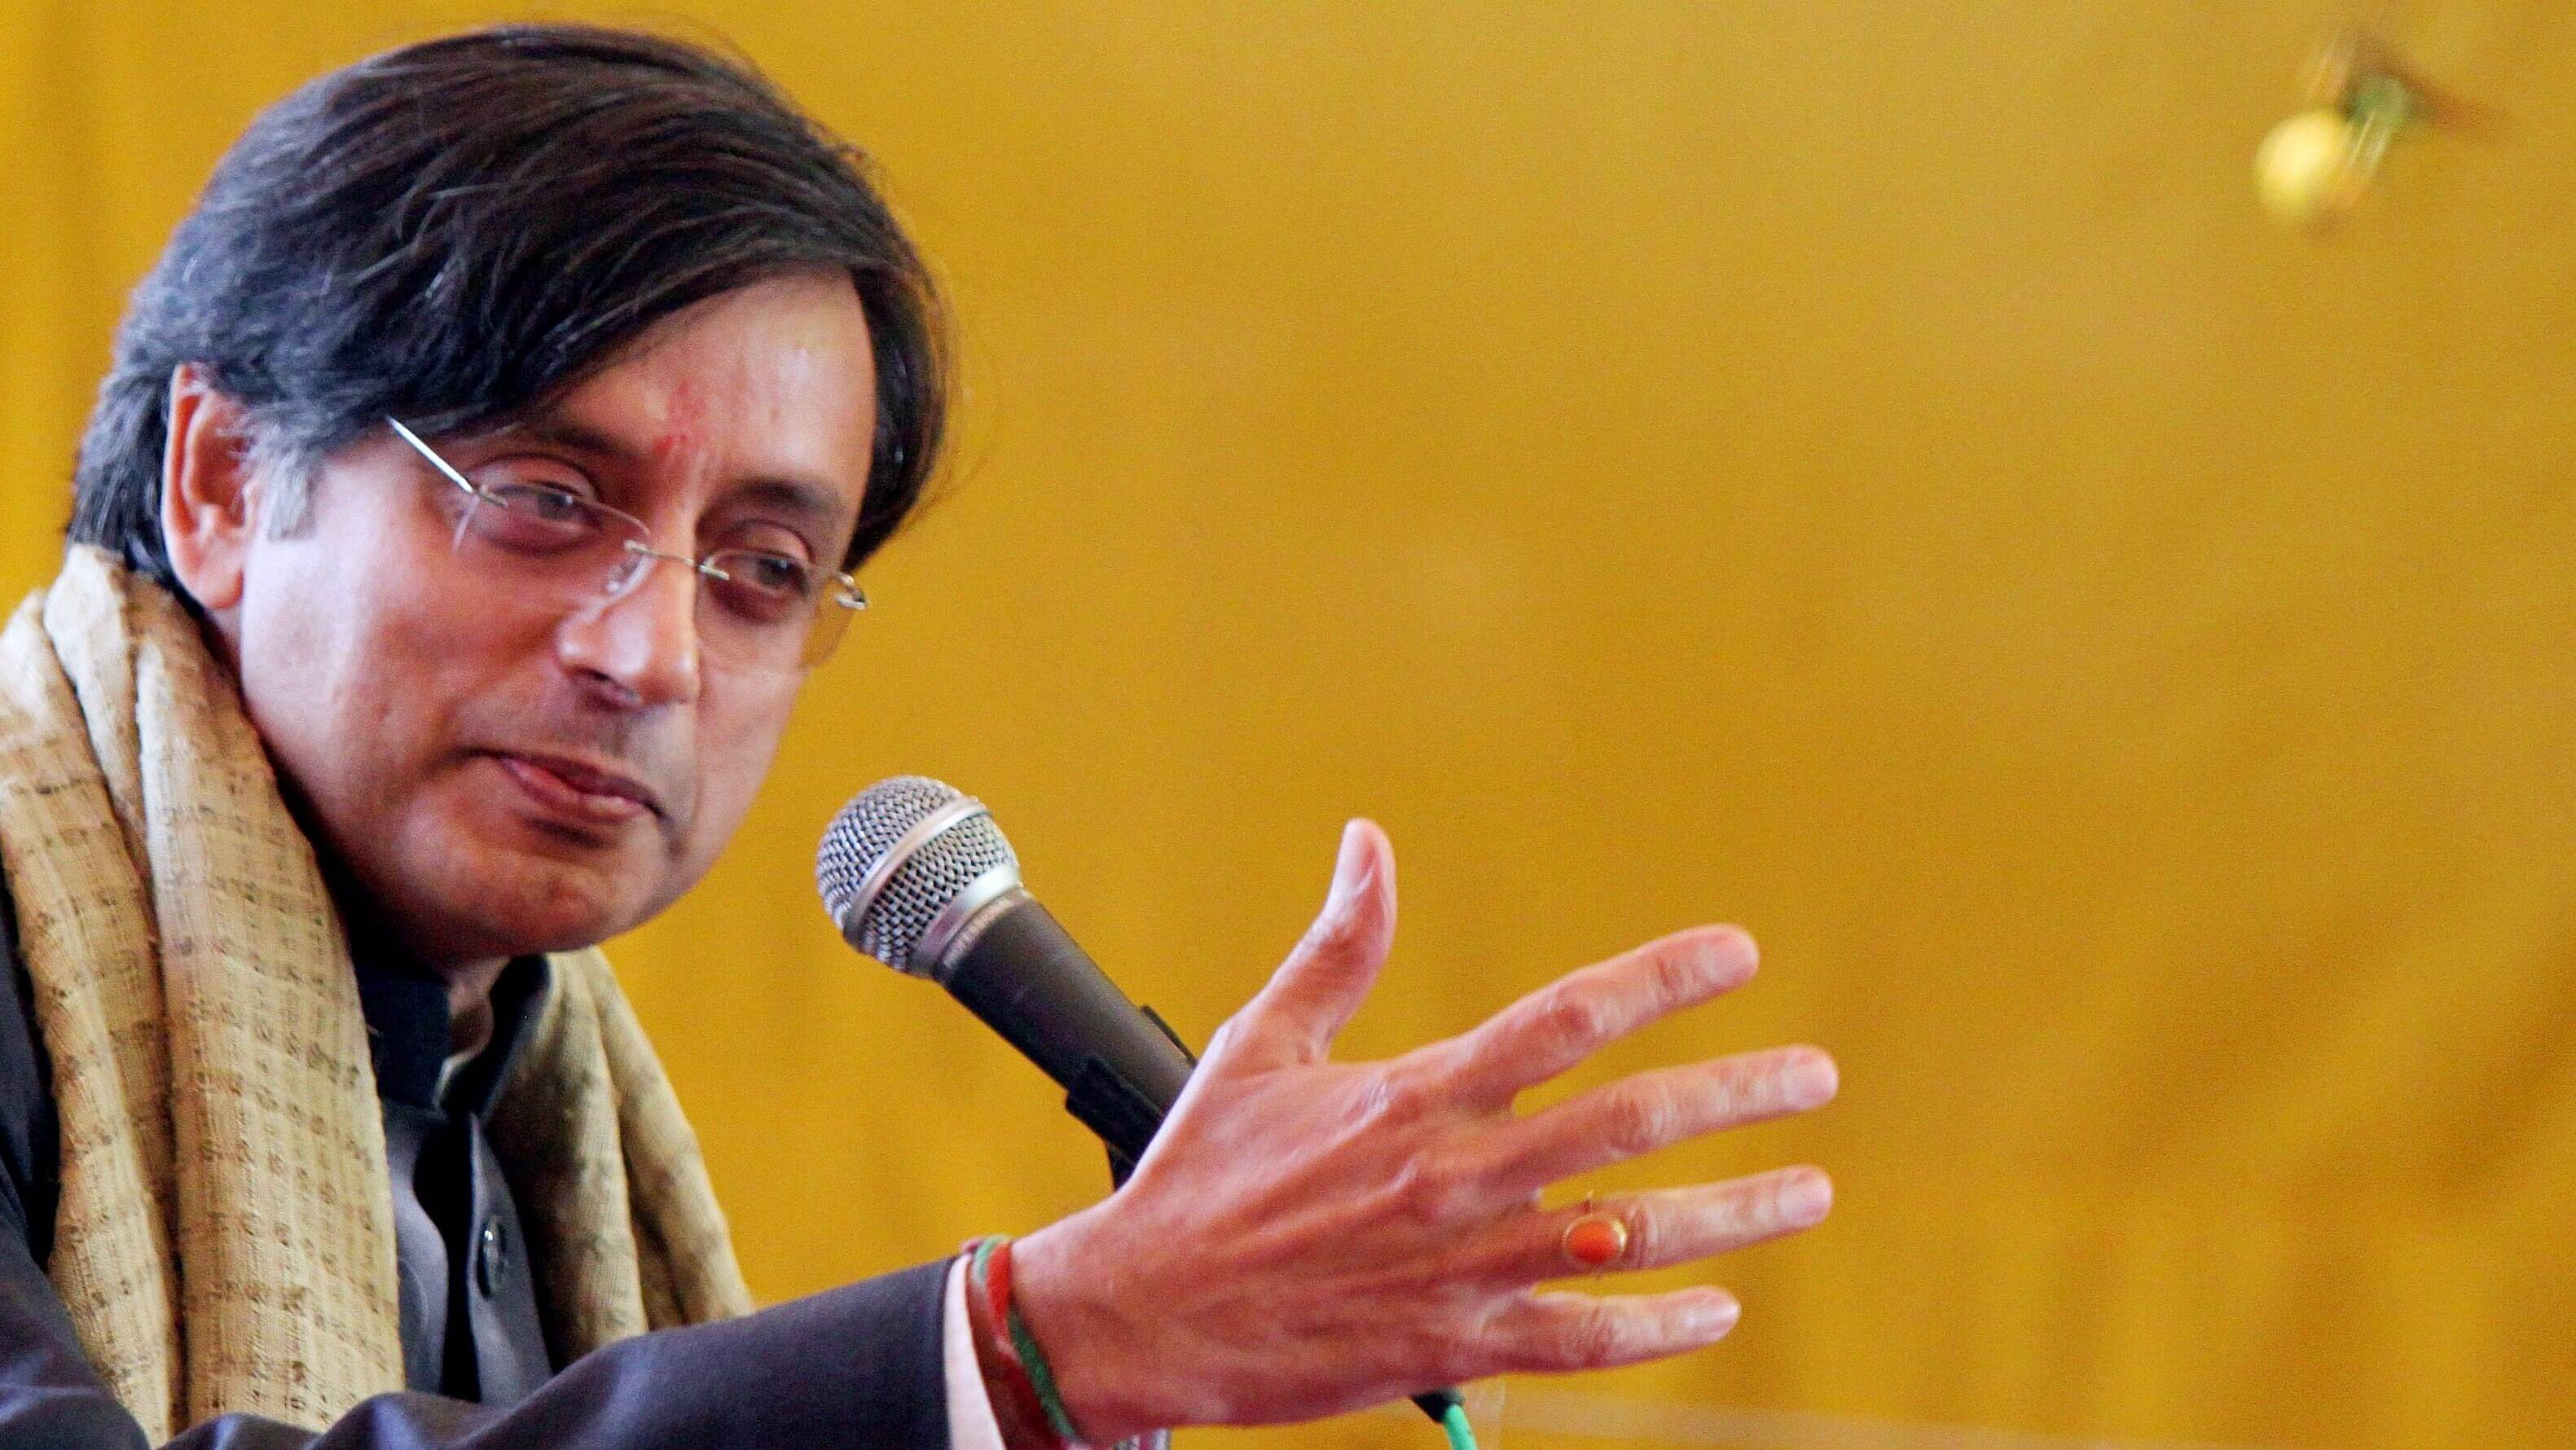 Central governments underspending on health, education: Congress MP Shashi Tharoor